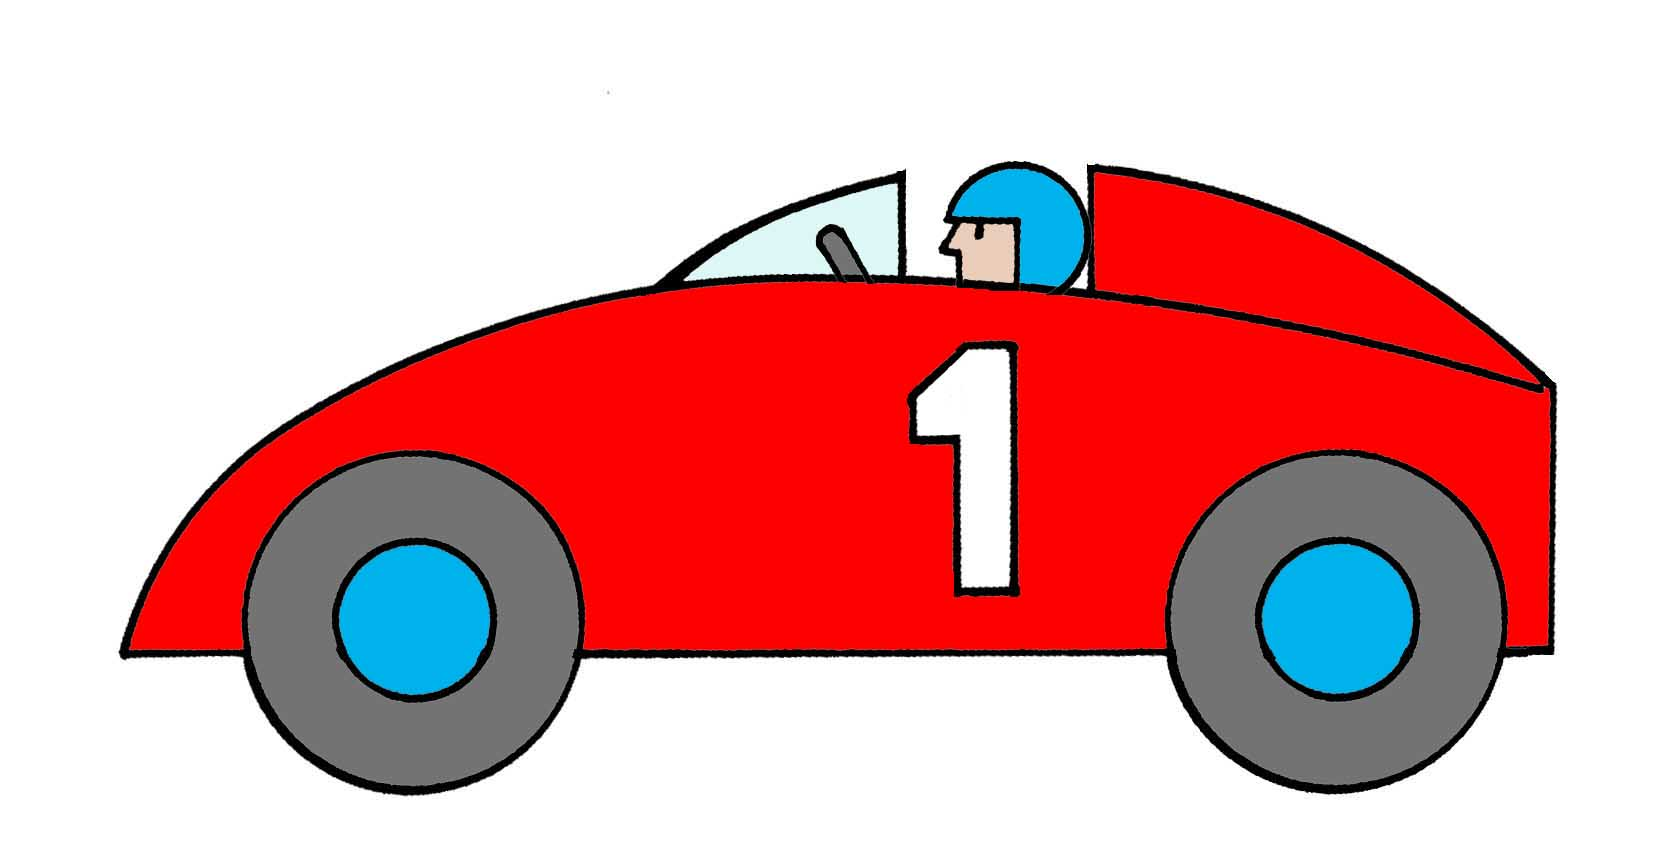 1660x868 Race Car Border Clipart Free Images 2